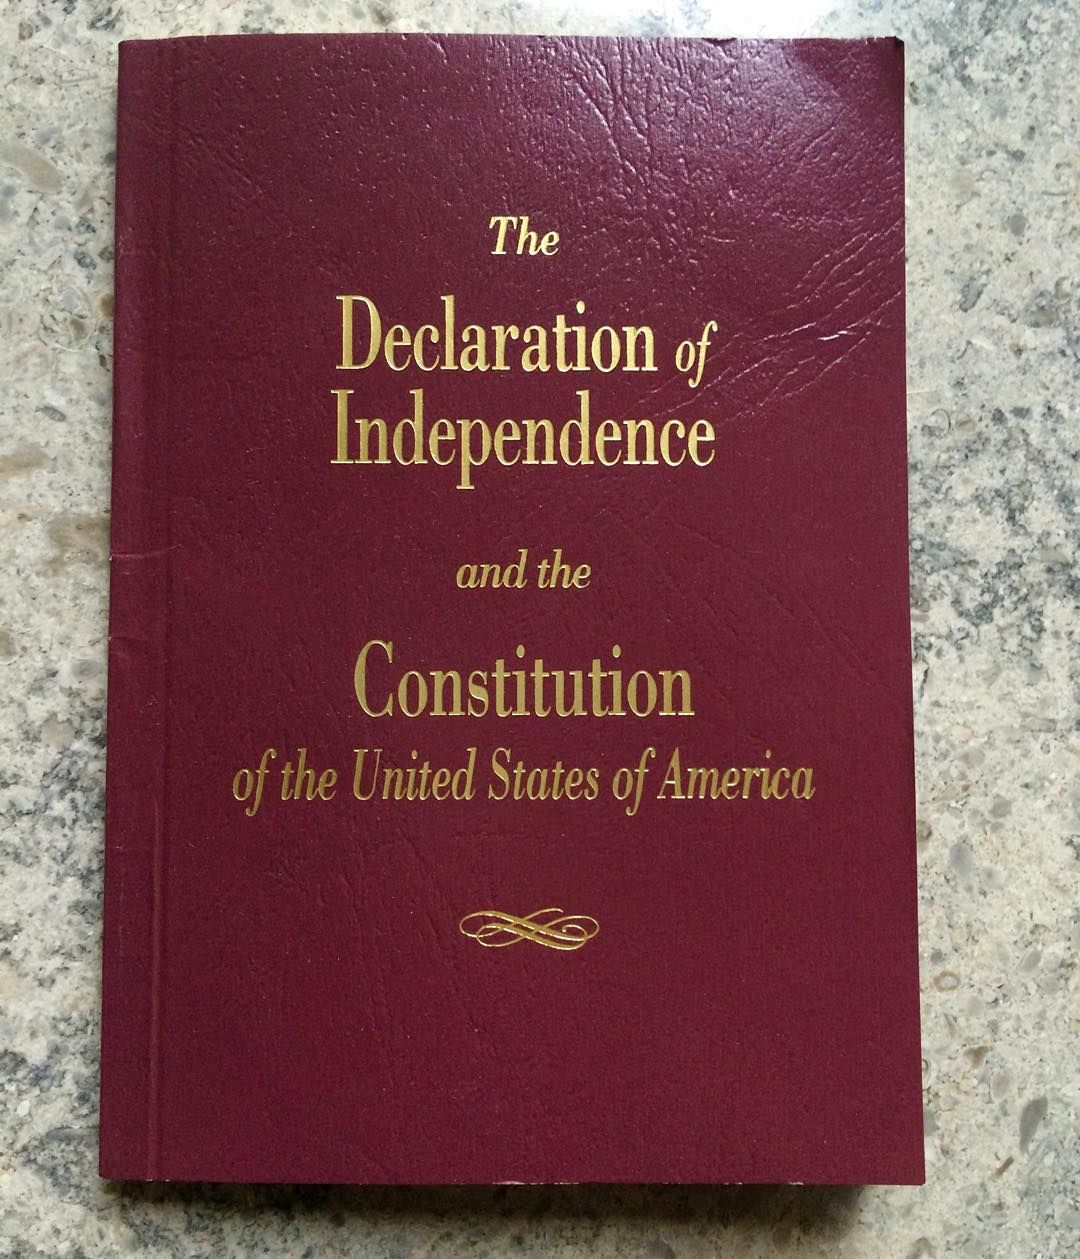 How many of you have actually read this?? Those who use this 300 year old piece of paper to hold down others rather than unite you are doing your country and our founders a disservice. America was created for the purpose of religious freedom and immigrants and you use this document to justify otherwise? The right to bear arms is an amendment. It is meant to be amended. It's not absolute. The 4th amendment protects us from unlawful  search and seizure yet you want militarized police defend…